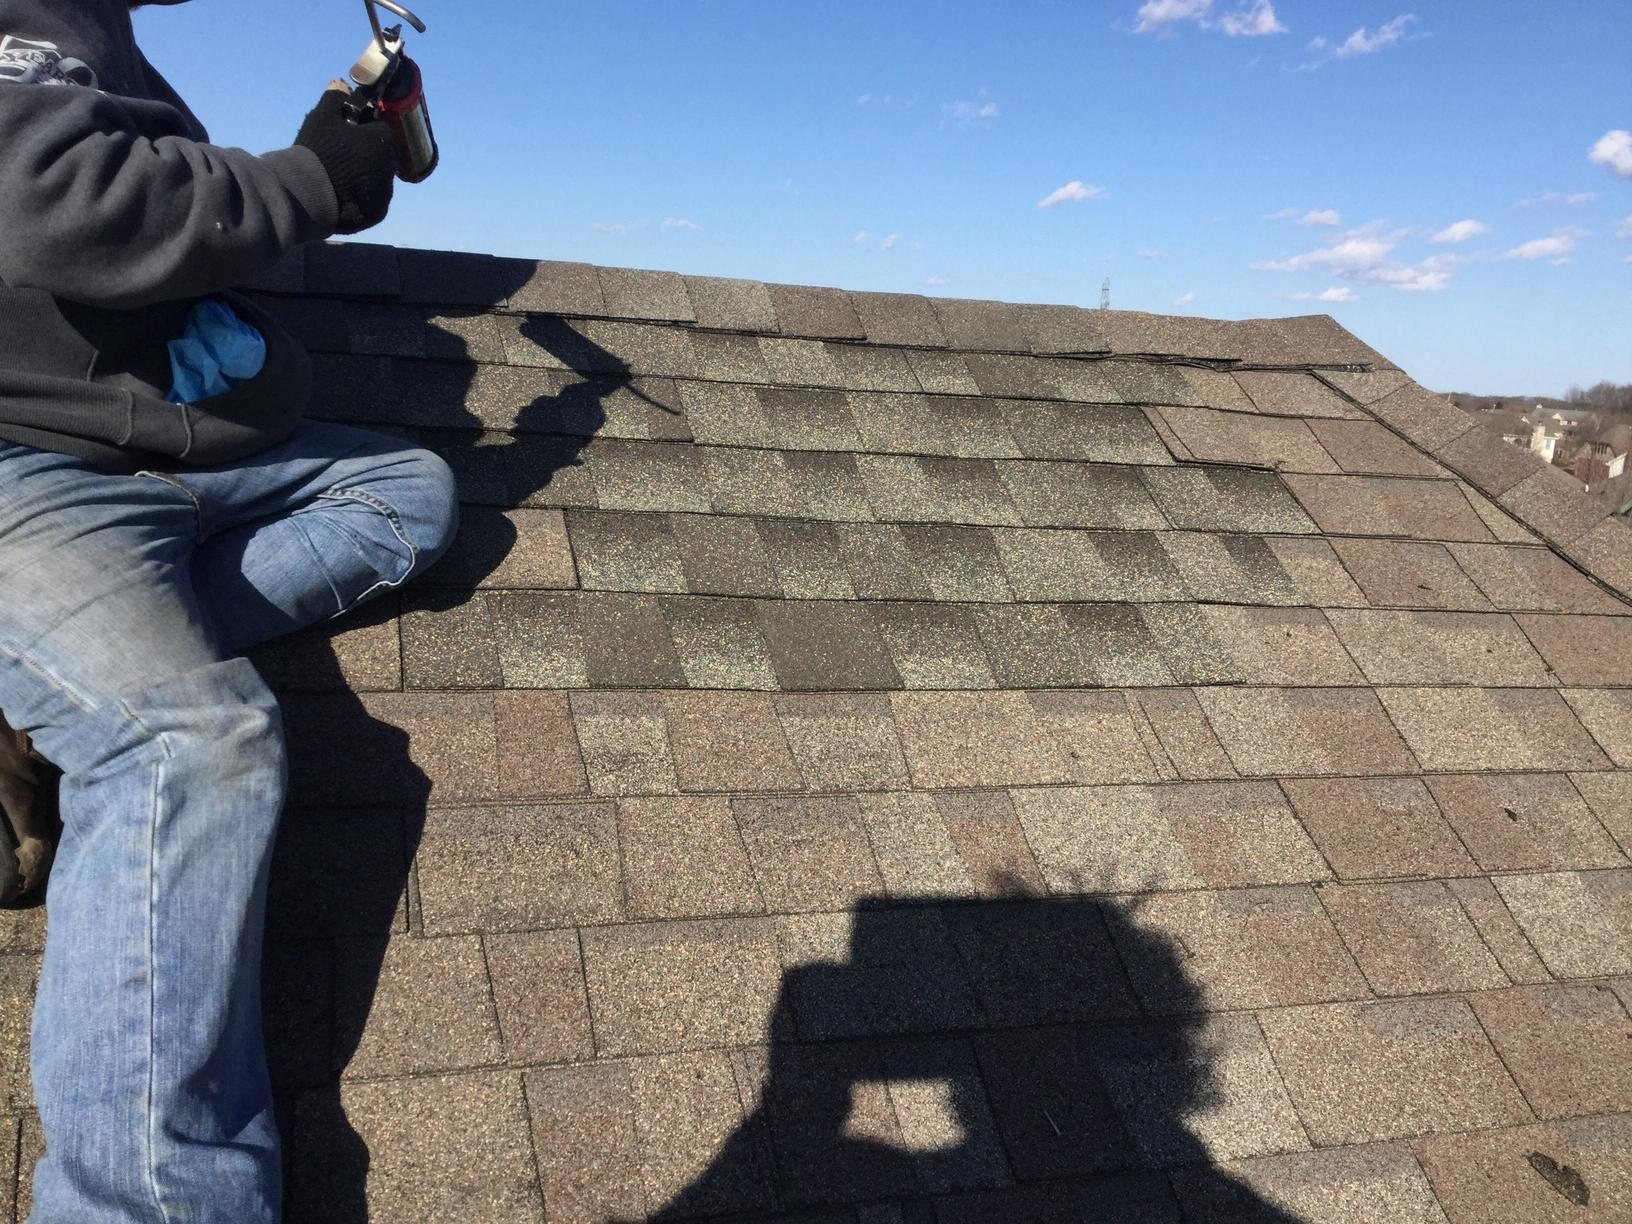 Frankfort, IL - Rooftop tarp removal and repair - After Photo